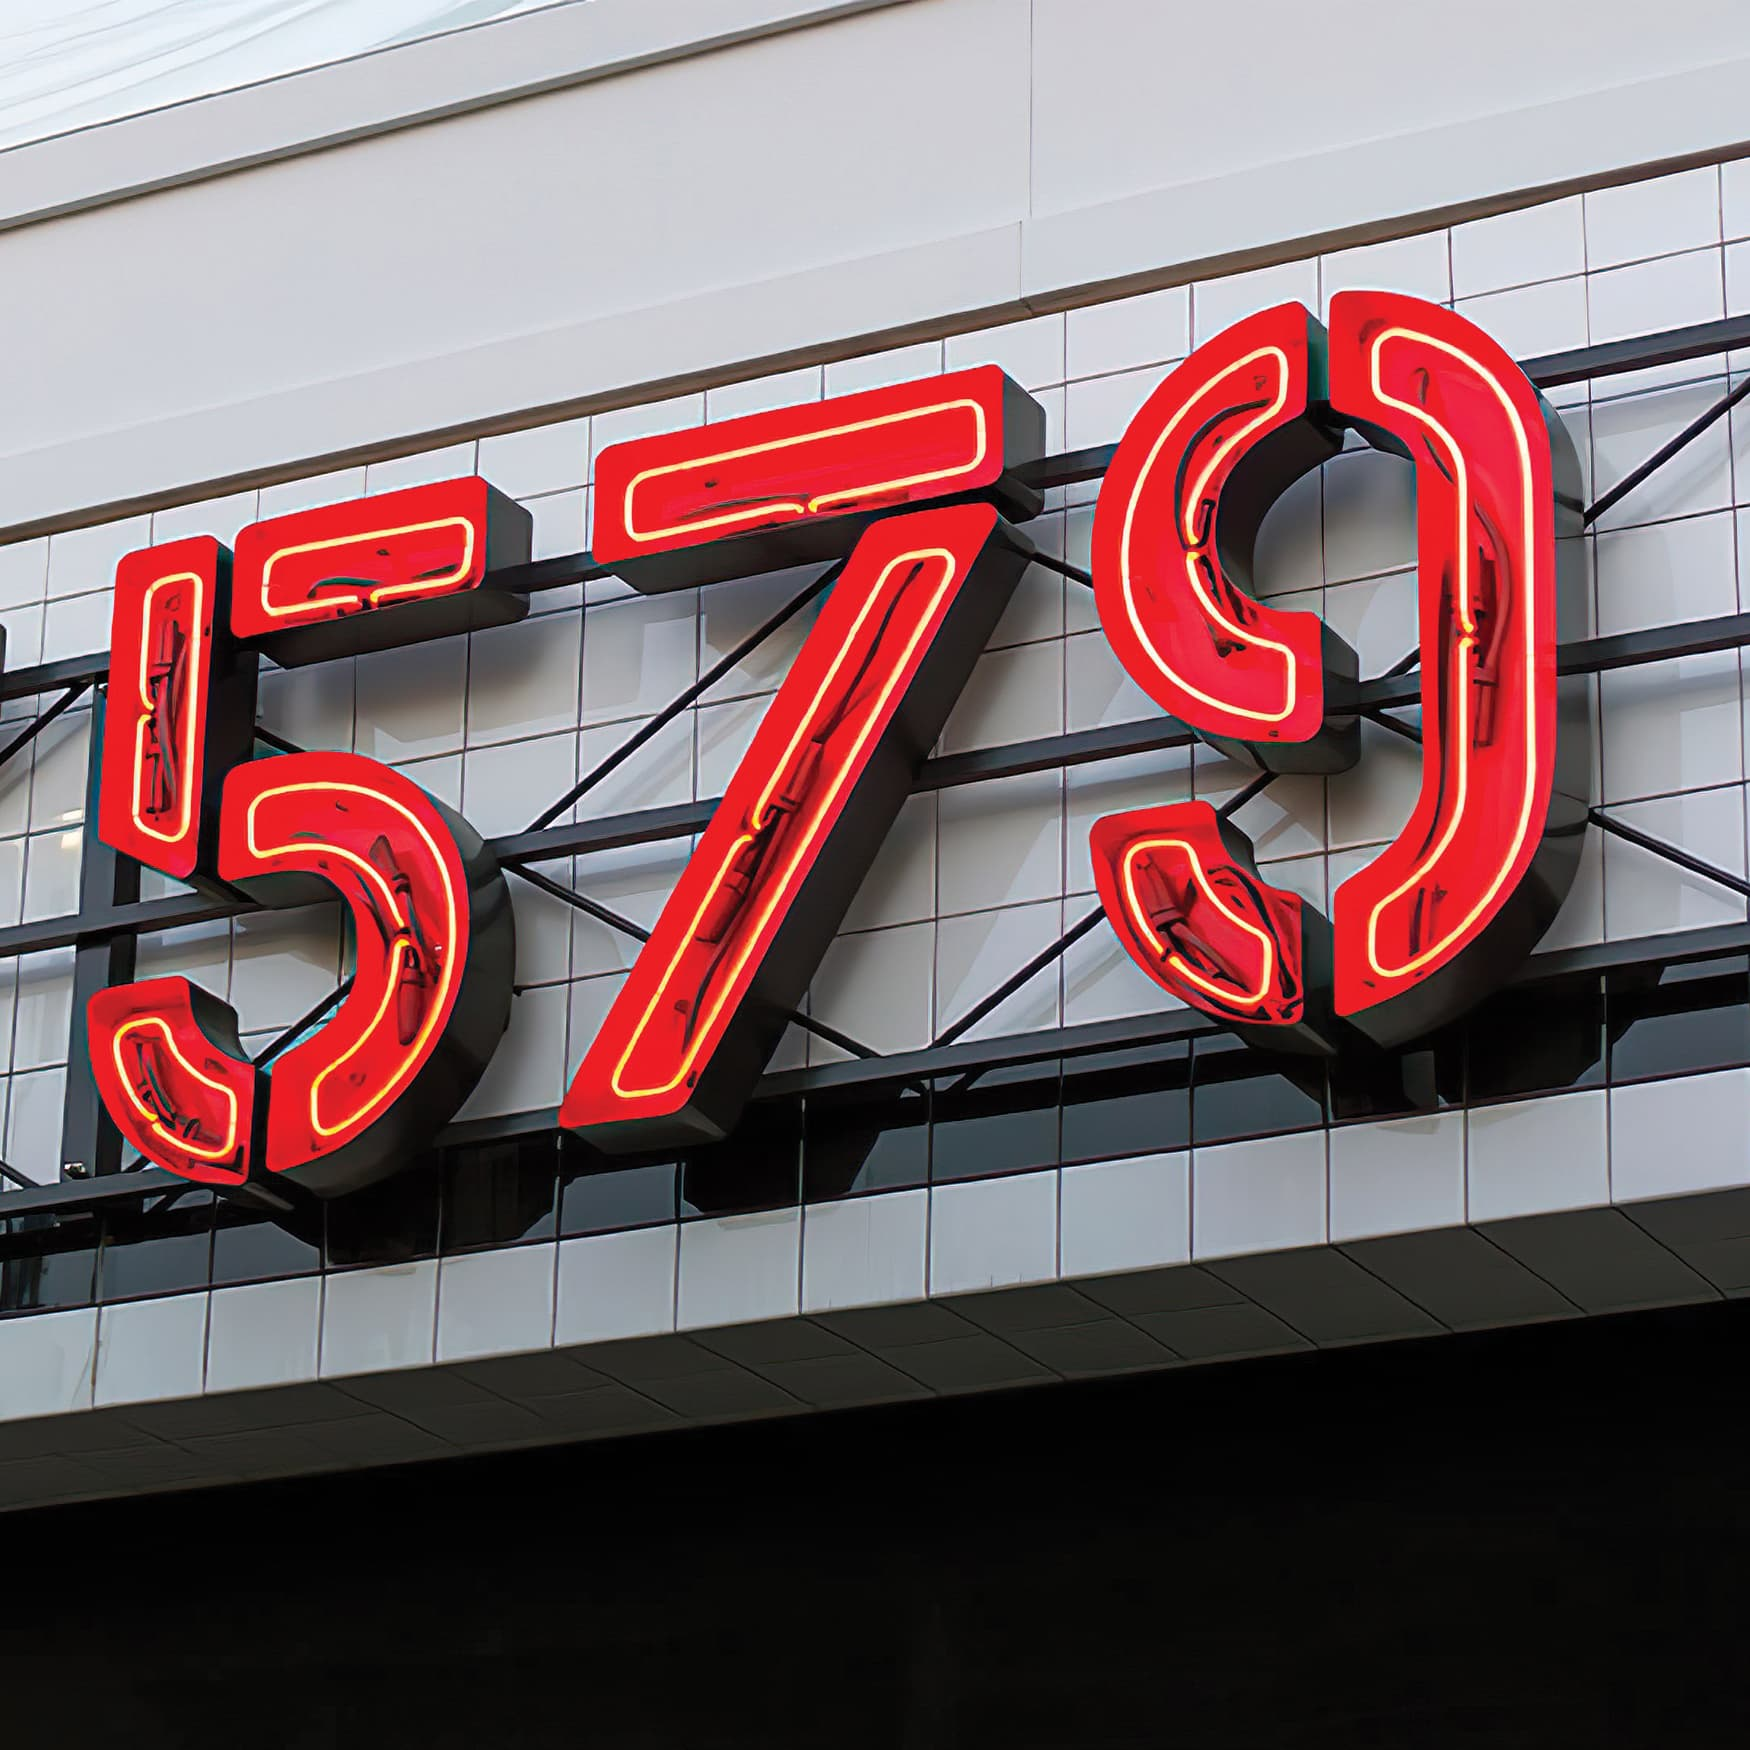 Lot 579 project identity sign detail. Beautiful stencil styled letters with neon inlay.